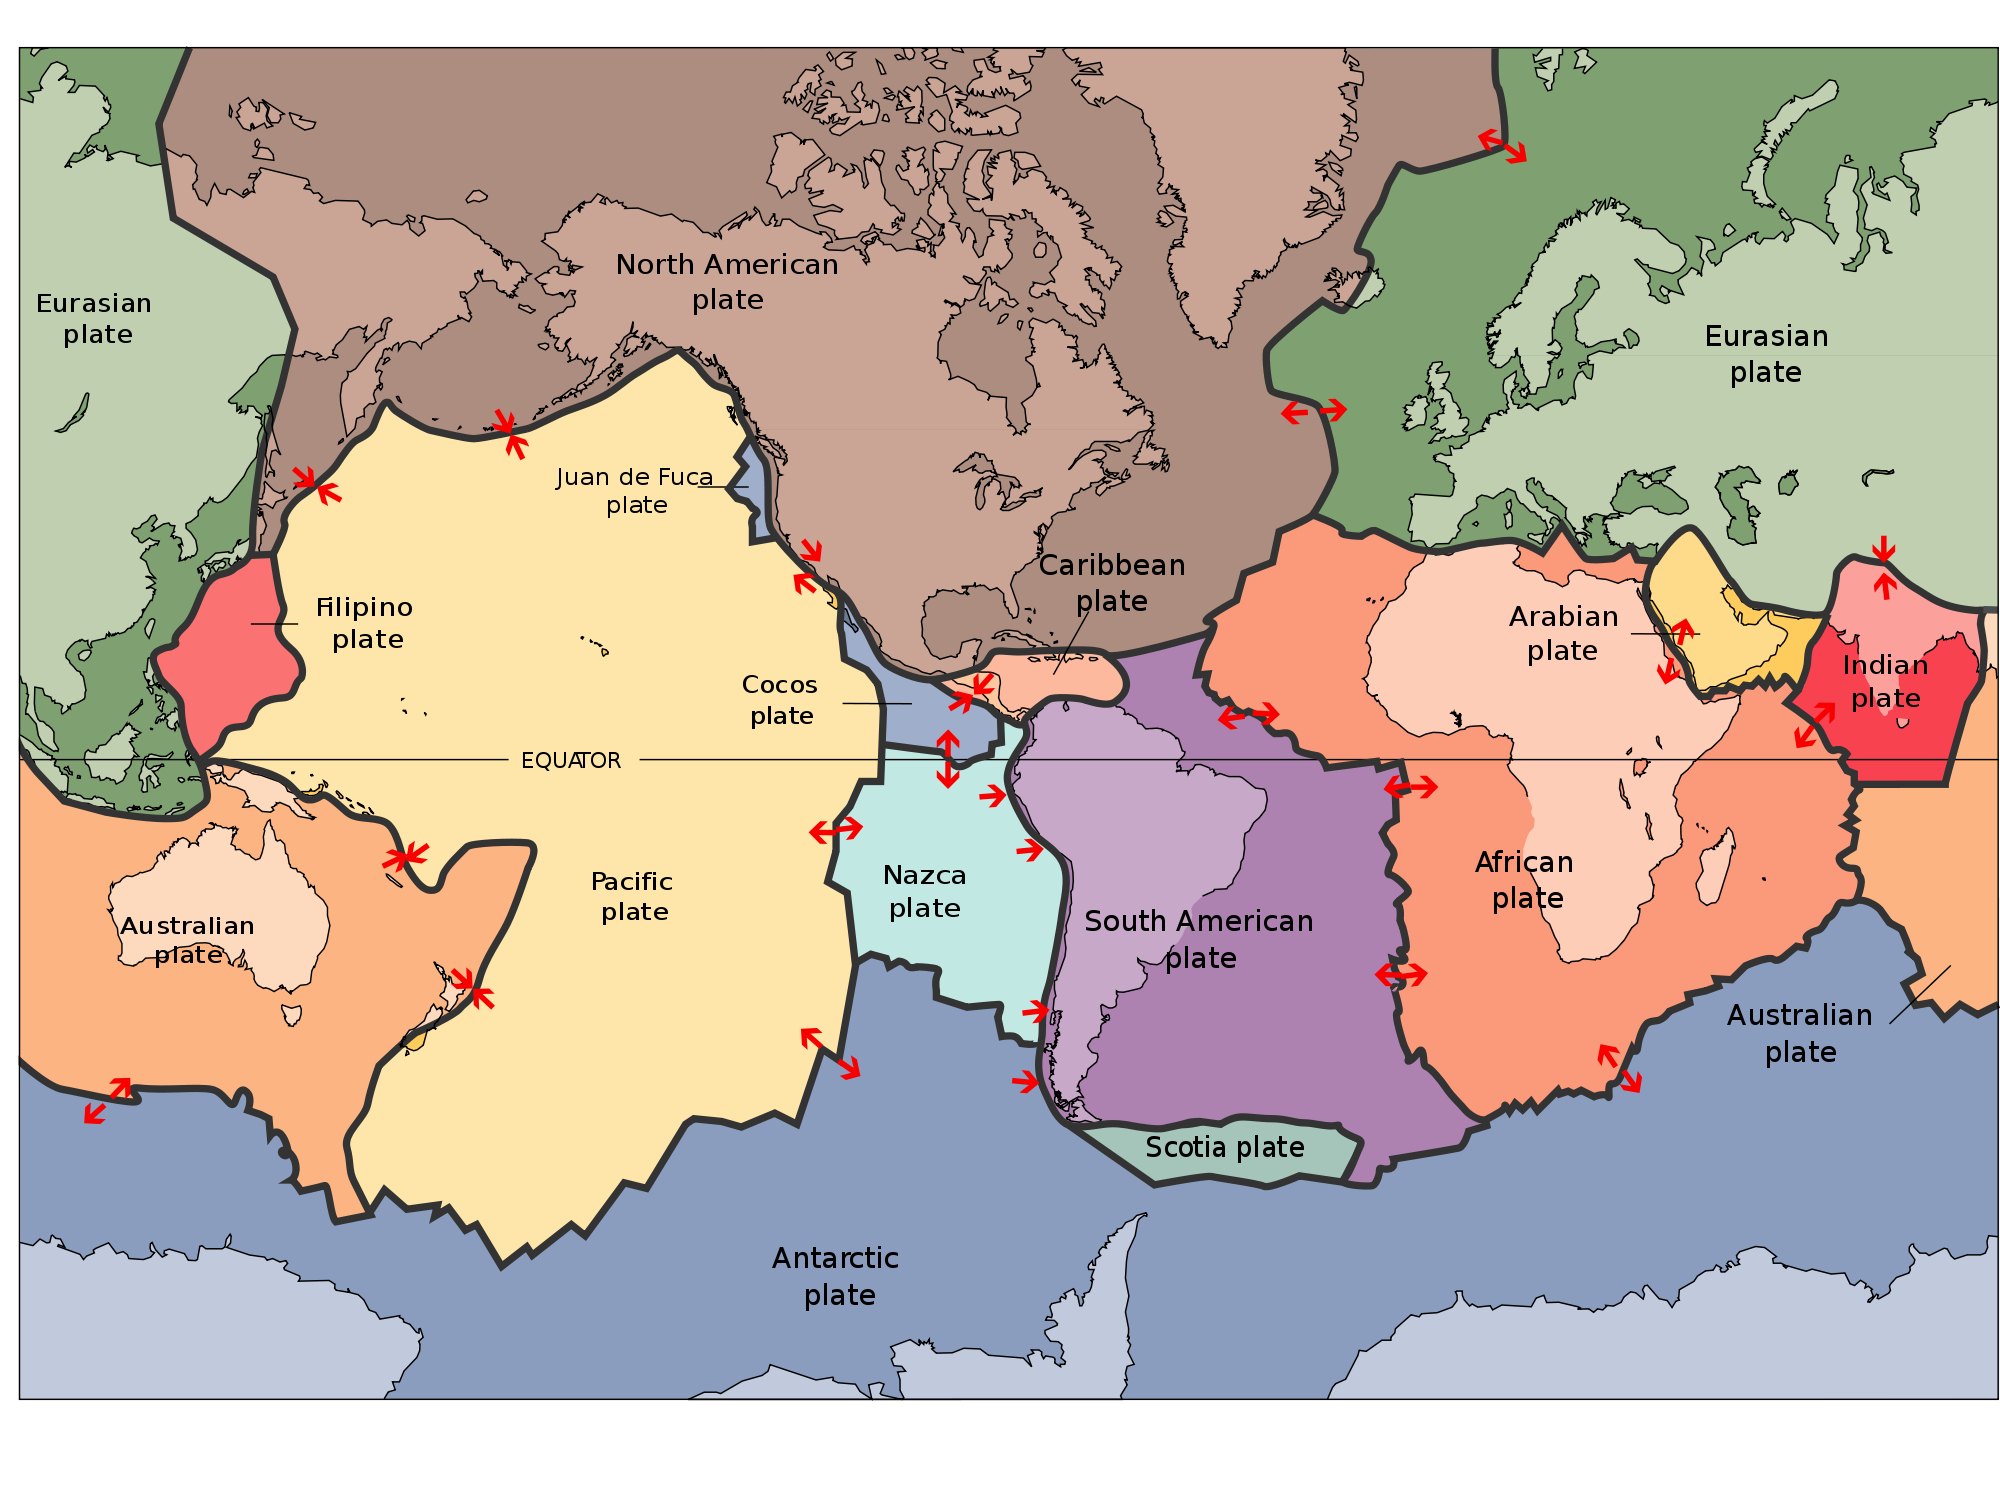 Plate tectonics continental drift spreading centers subduction plate tectonics continental drift spreading centers subduction zones pooptronica